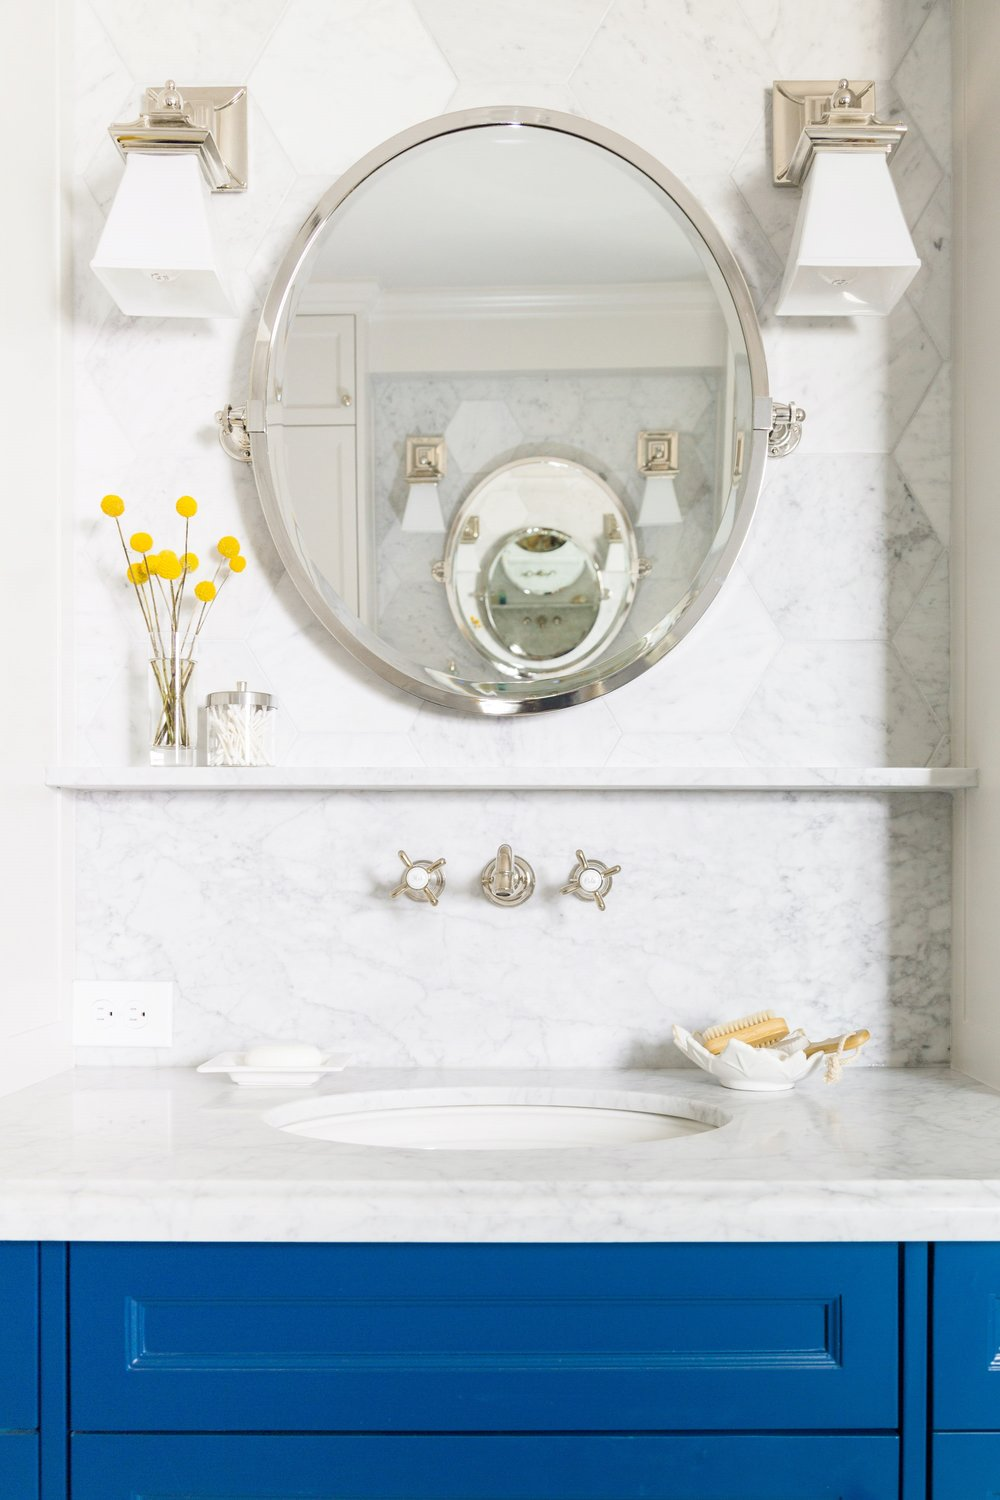 Wall mount faucet and marble ledge in bathroom remodel | Carla Aston, Designer | Tori Aston, Photographer